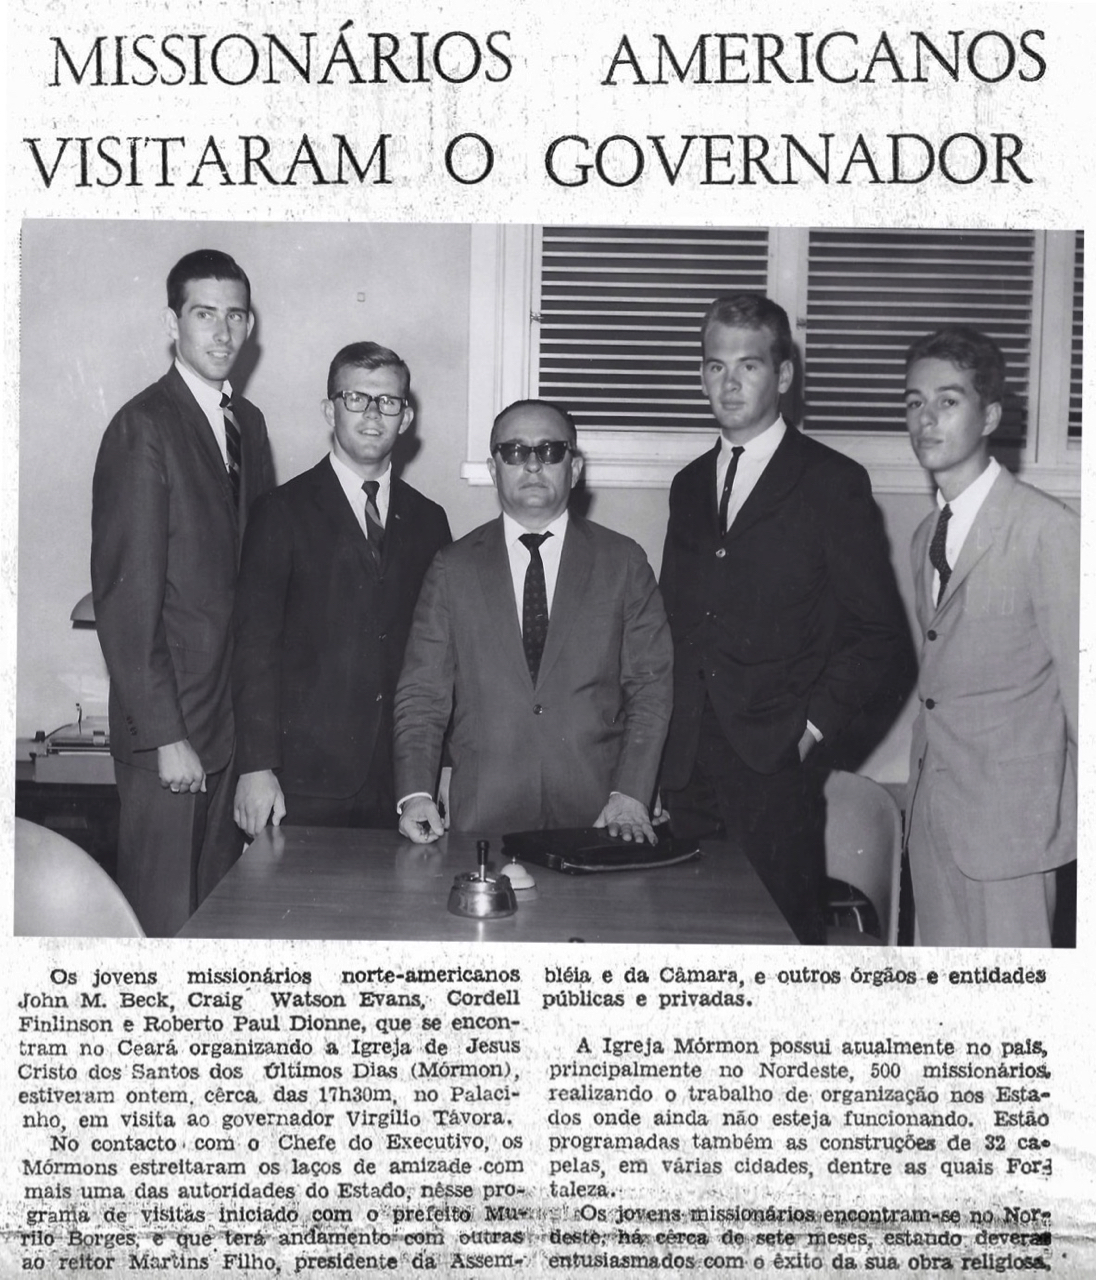 A newspaper clipping shows Virgilio Tavora, center, the governor of the state of Ceará, meeting with the four missionaries serving in Fortaleza, Brazil in 1966 — from left, Elder Craig Evans, Elder John Beck, Elder Cordell Finlinson and Elder Robert Dionne.